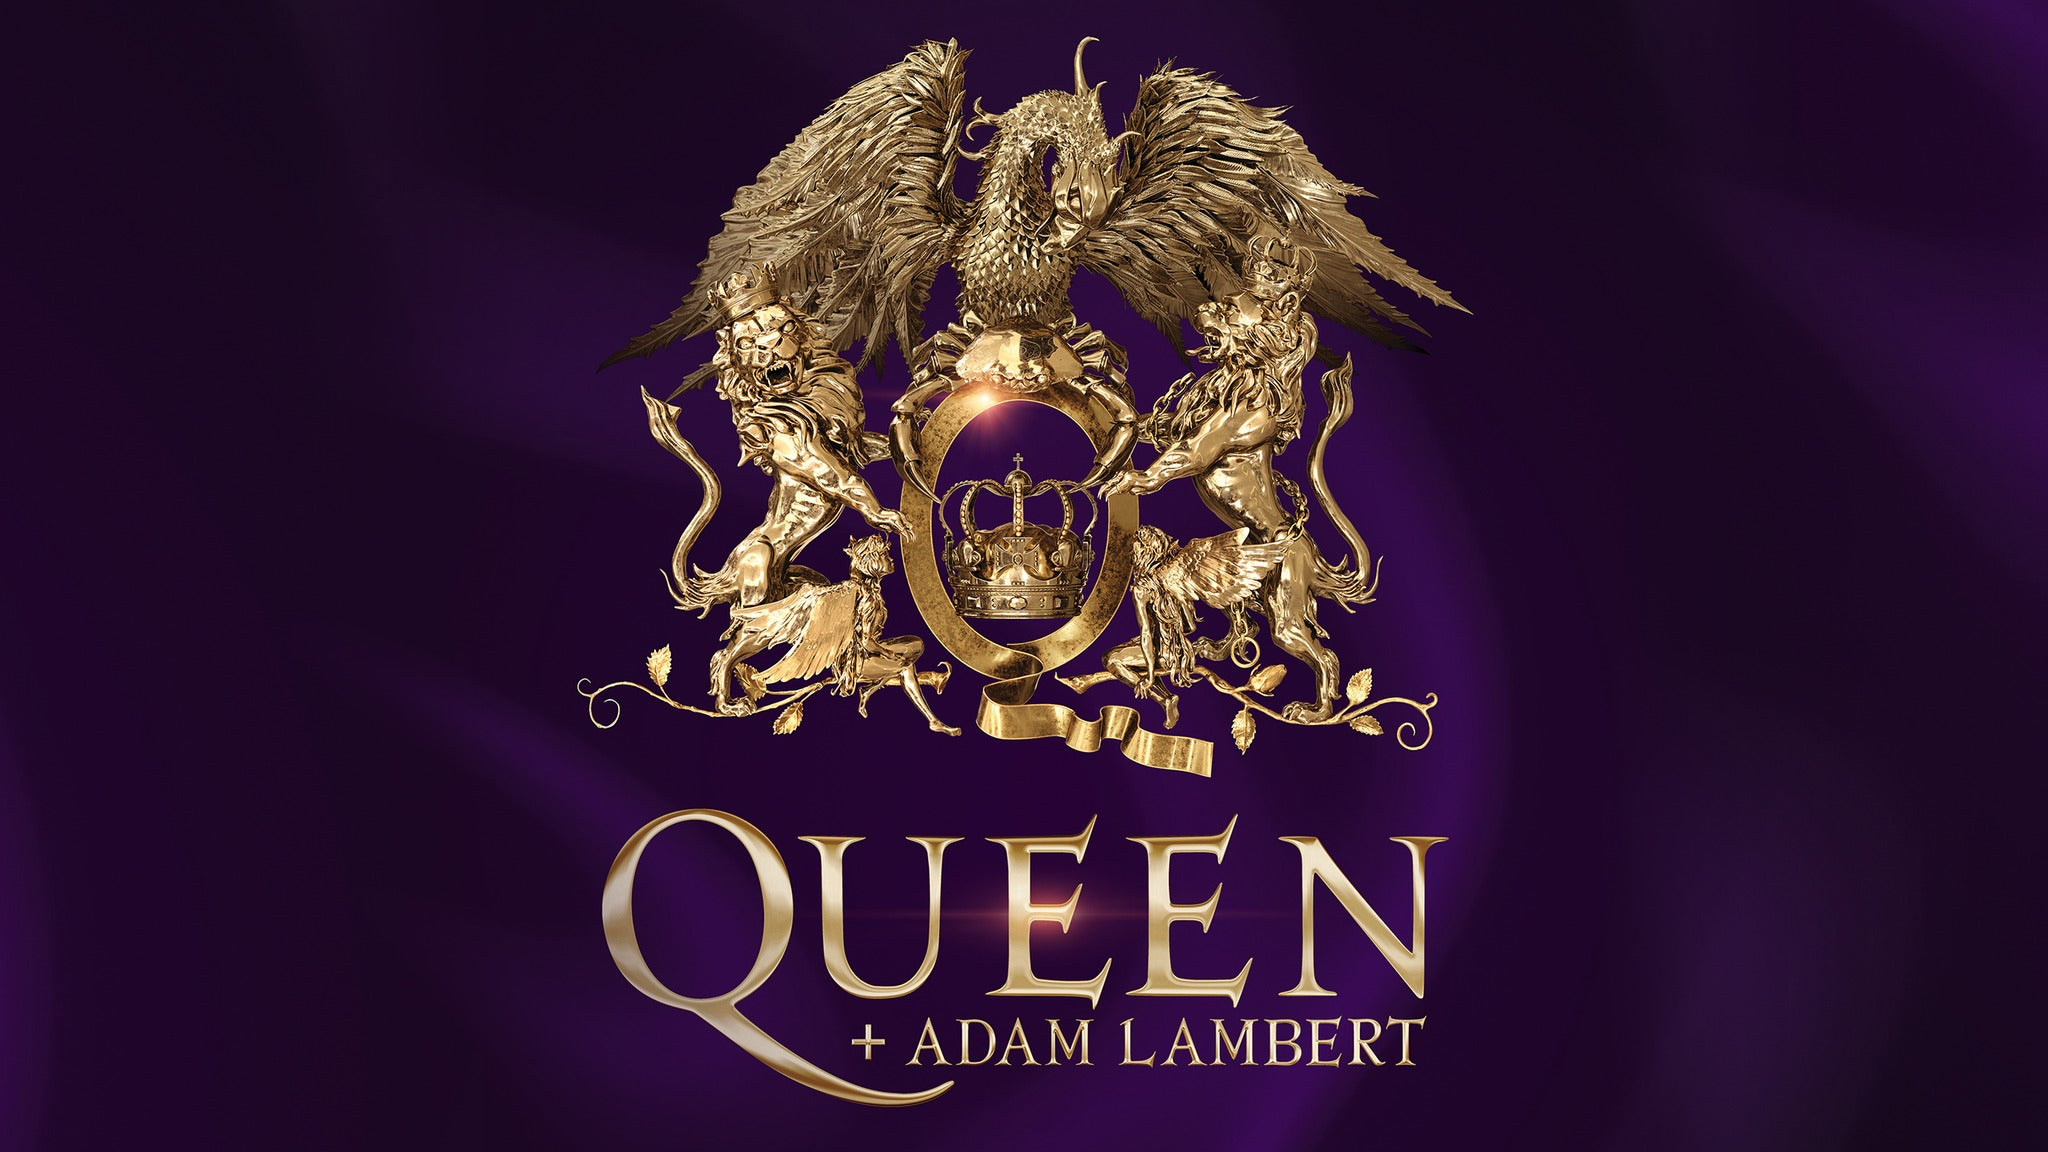 Queen - Adam Lambert at Utilita Arena Birmingham Tickets